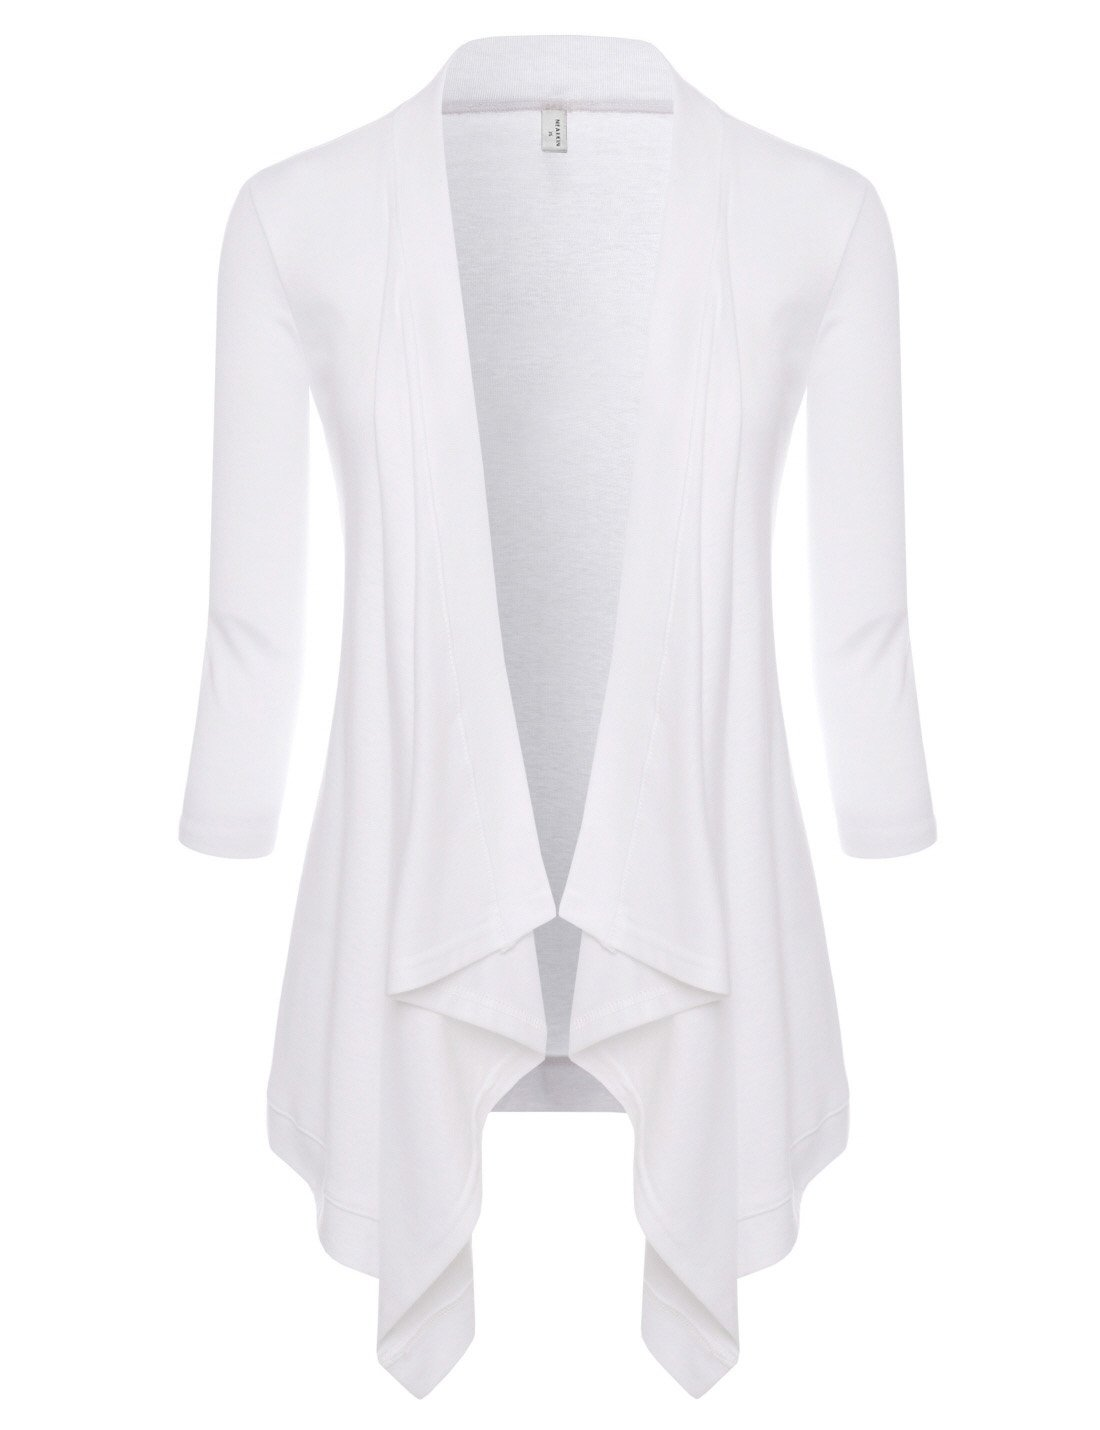 NEARKIN (NKNKWCD6927) Womens Open Front Slim Cut Look Daily Casual 3/4 Sleeve Cardigans WHITE US M(Tag size L)